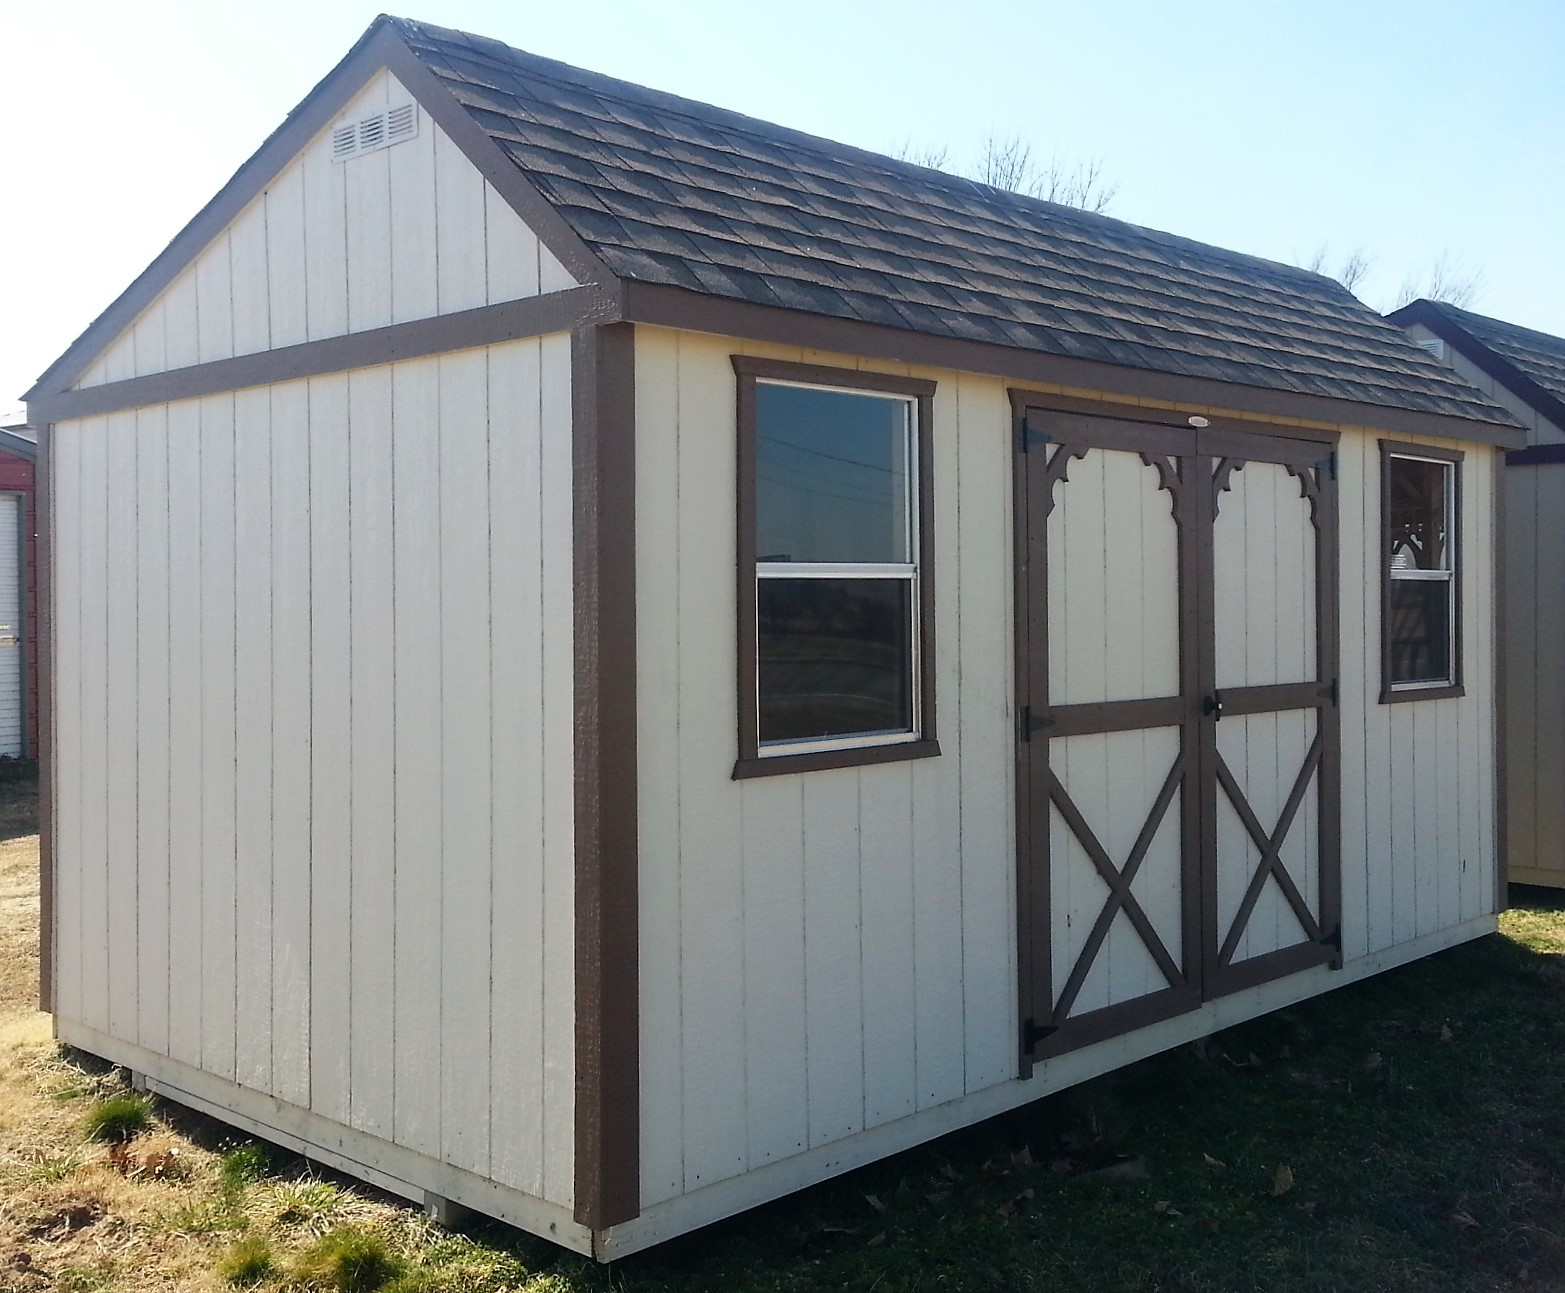 wooden portable buildings trailers portable storage buildings windows side entry 6 ft x 6 ft double barn style doors and off center saltbox style roof